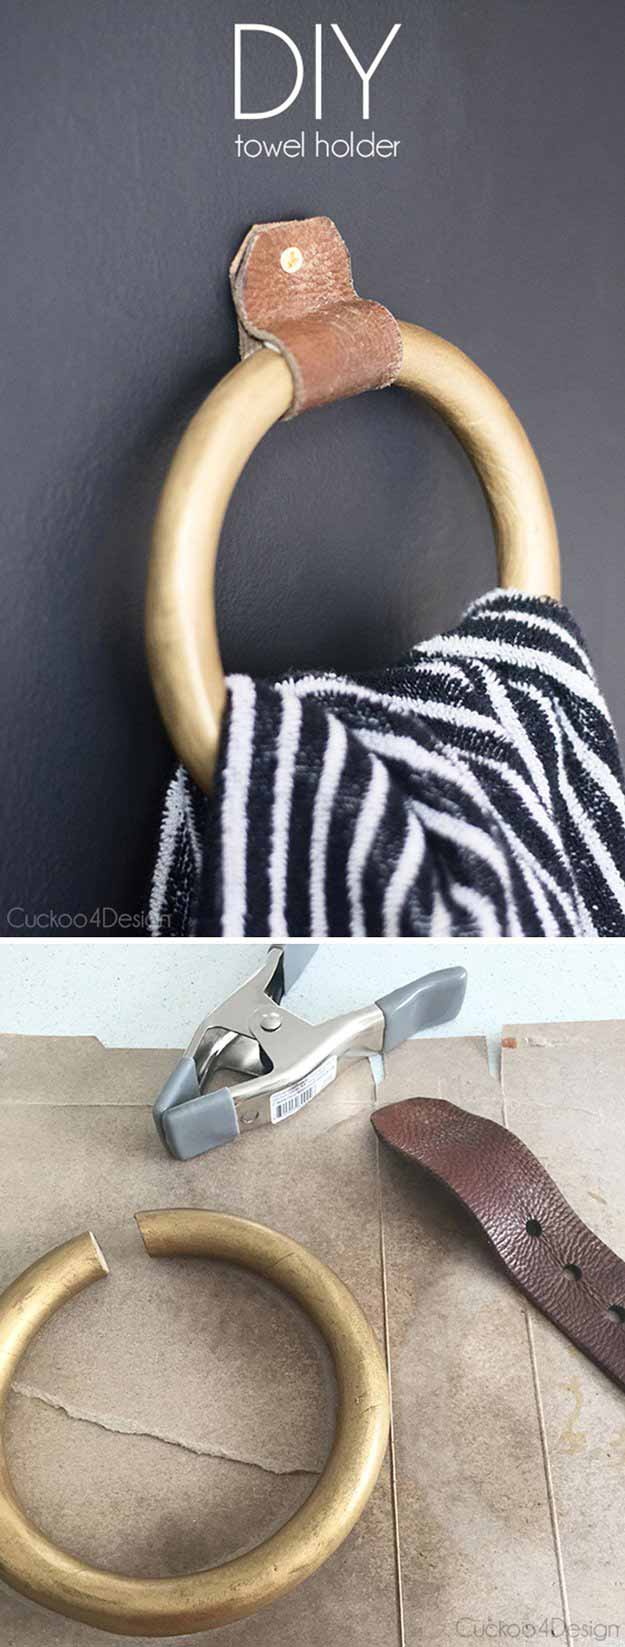 Best Decorating On A Budget Diy Projects Craft Ideas How To's This Month